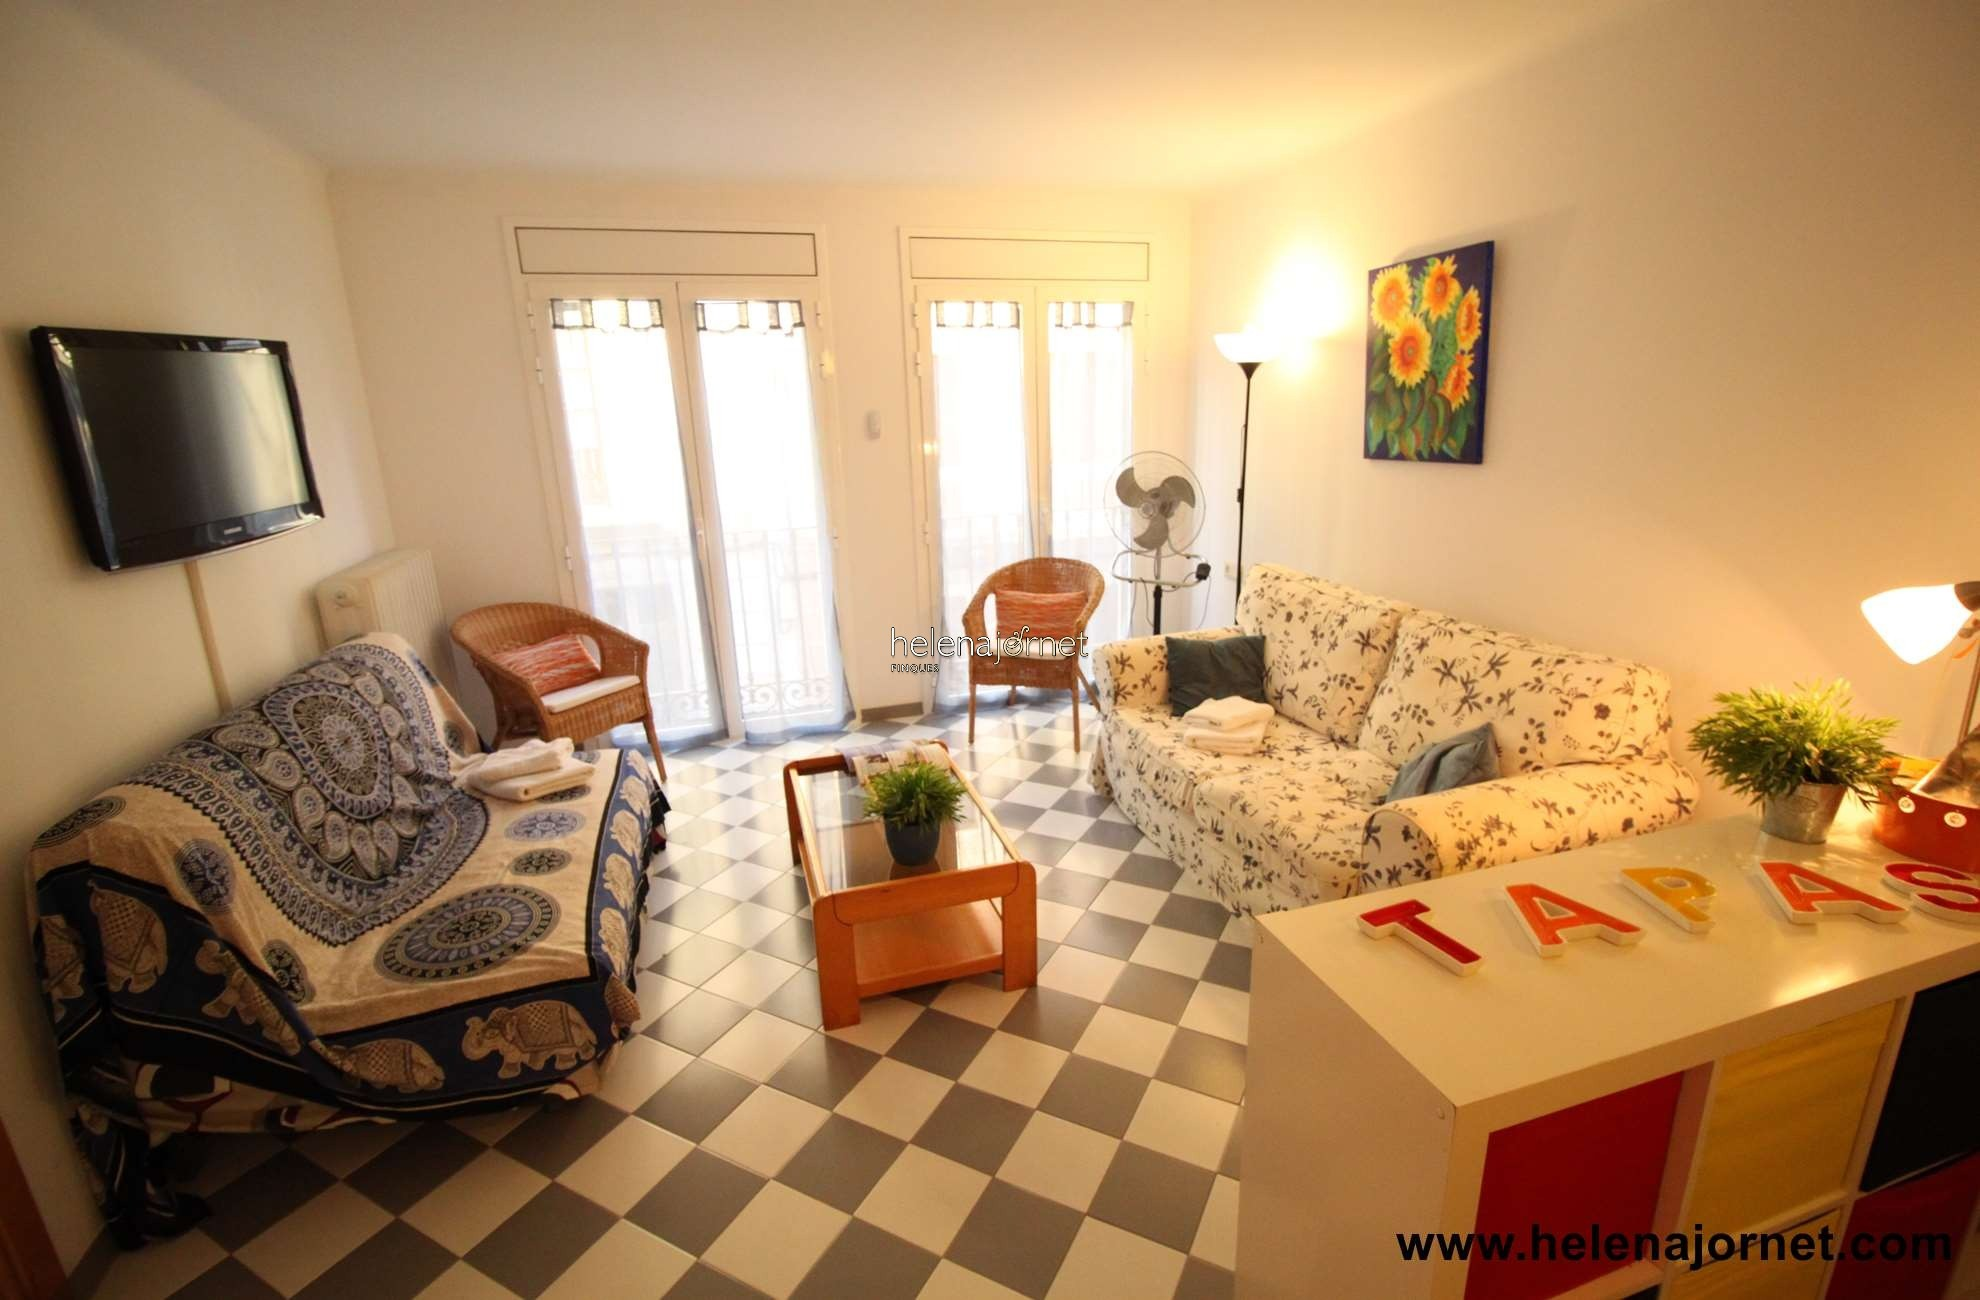 Apartment located just a few meters away from the beach - 70014 Juan Maragall